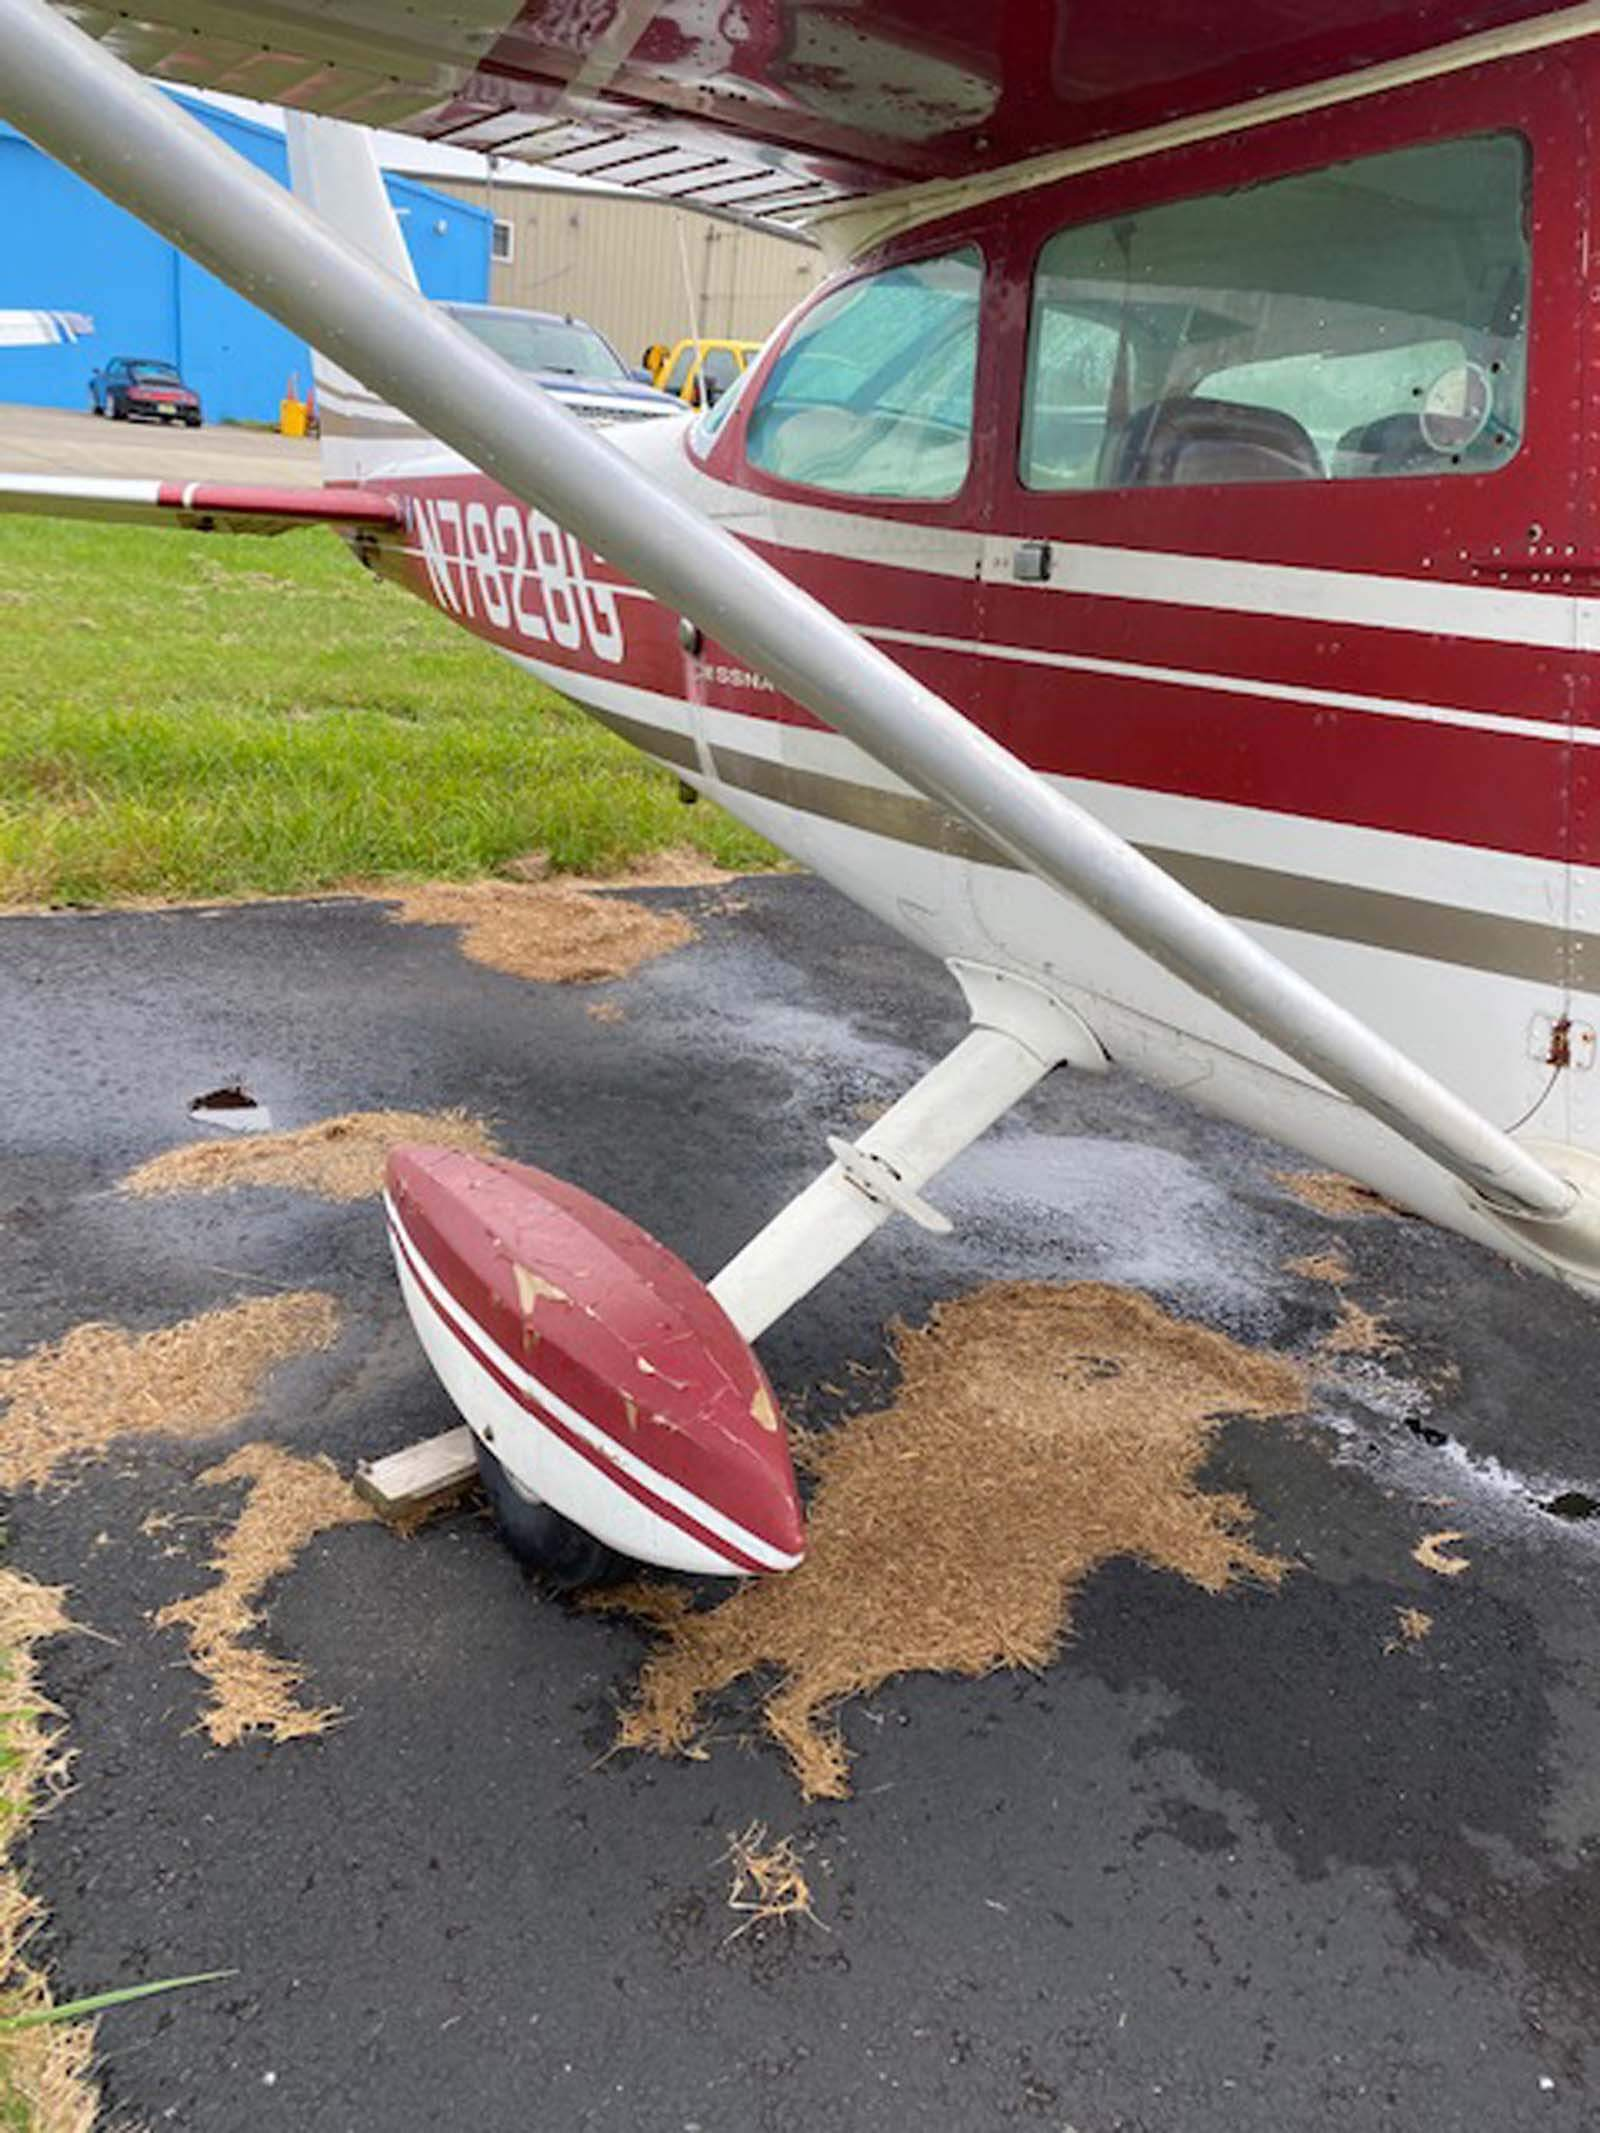 1971 Cessna 172 - FOR SALE at Princeton Airport ~ Contact Ken Nierenberg at 609-731-4628